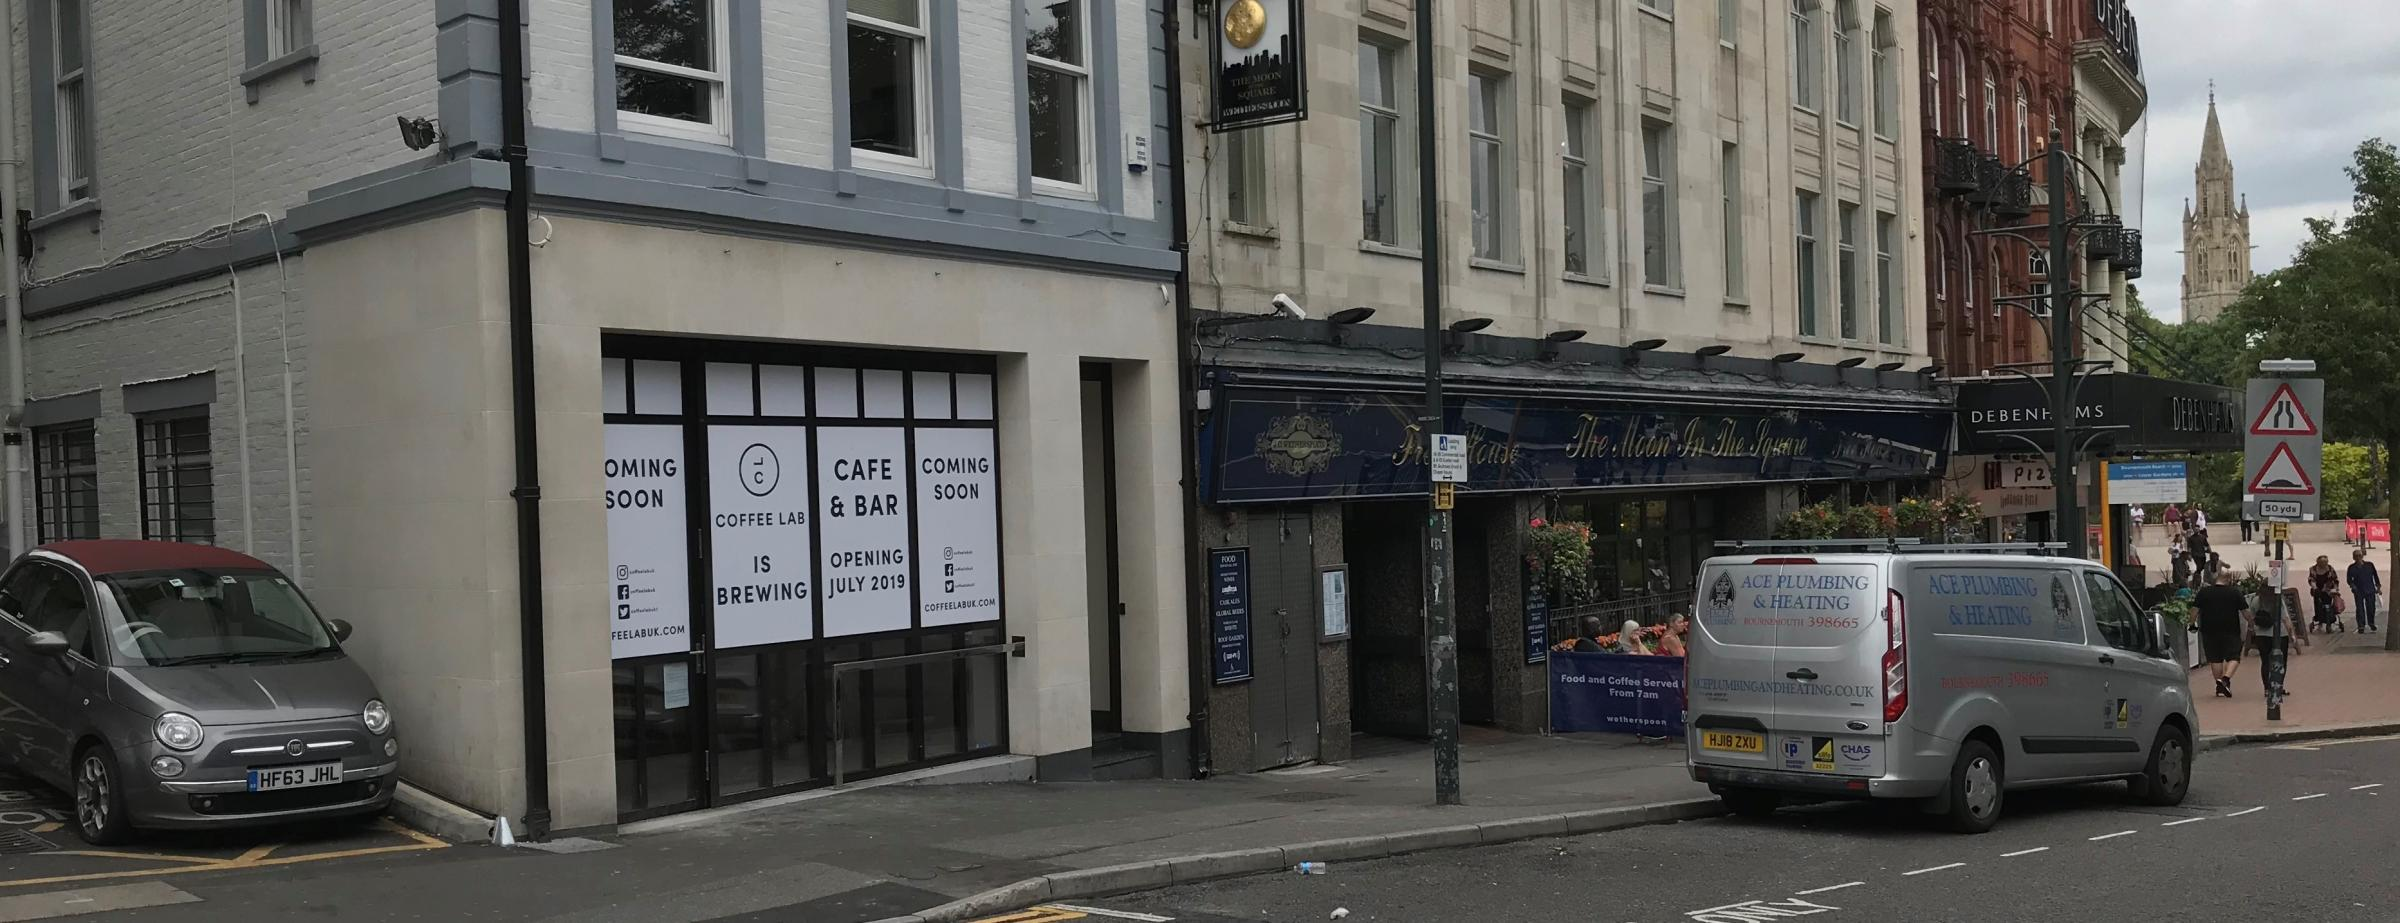 Coffee Lab Wants To Open In Exeter Road Bournemouth Echo